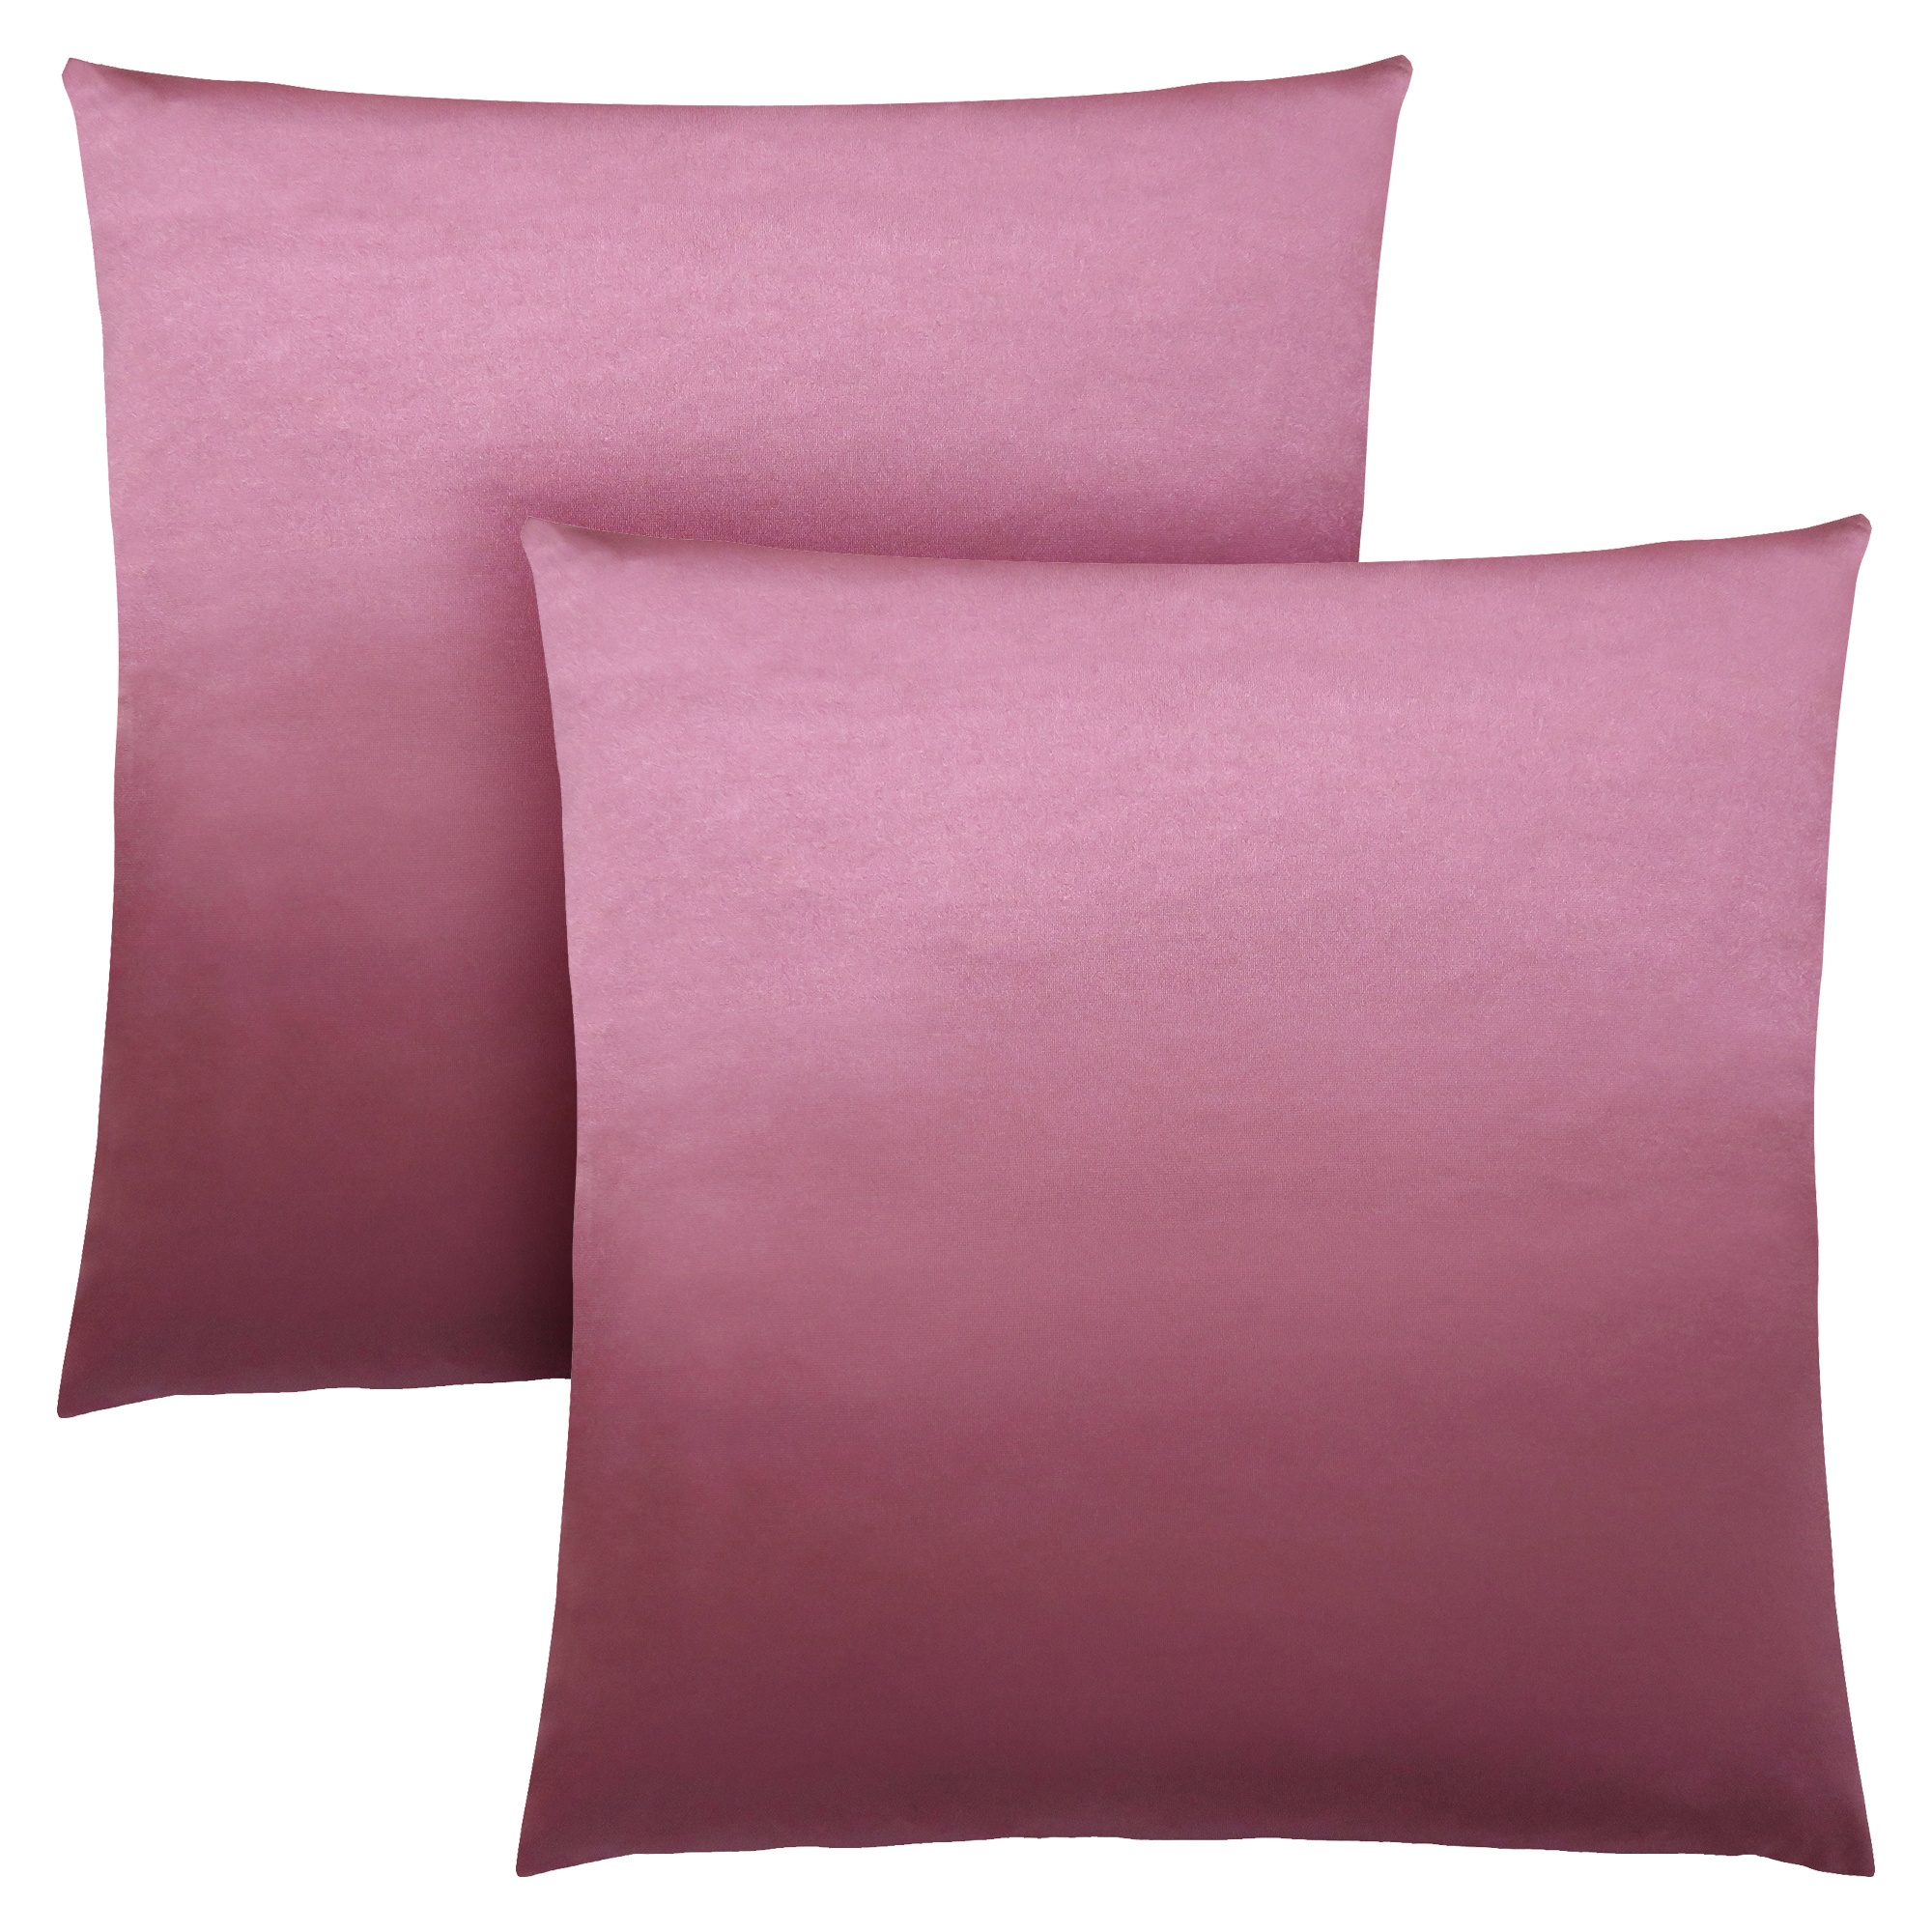 "PILLOW - 18""X 18"" / PINK SATIN / 2PCS"